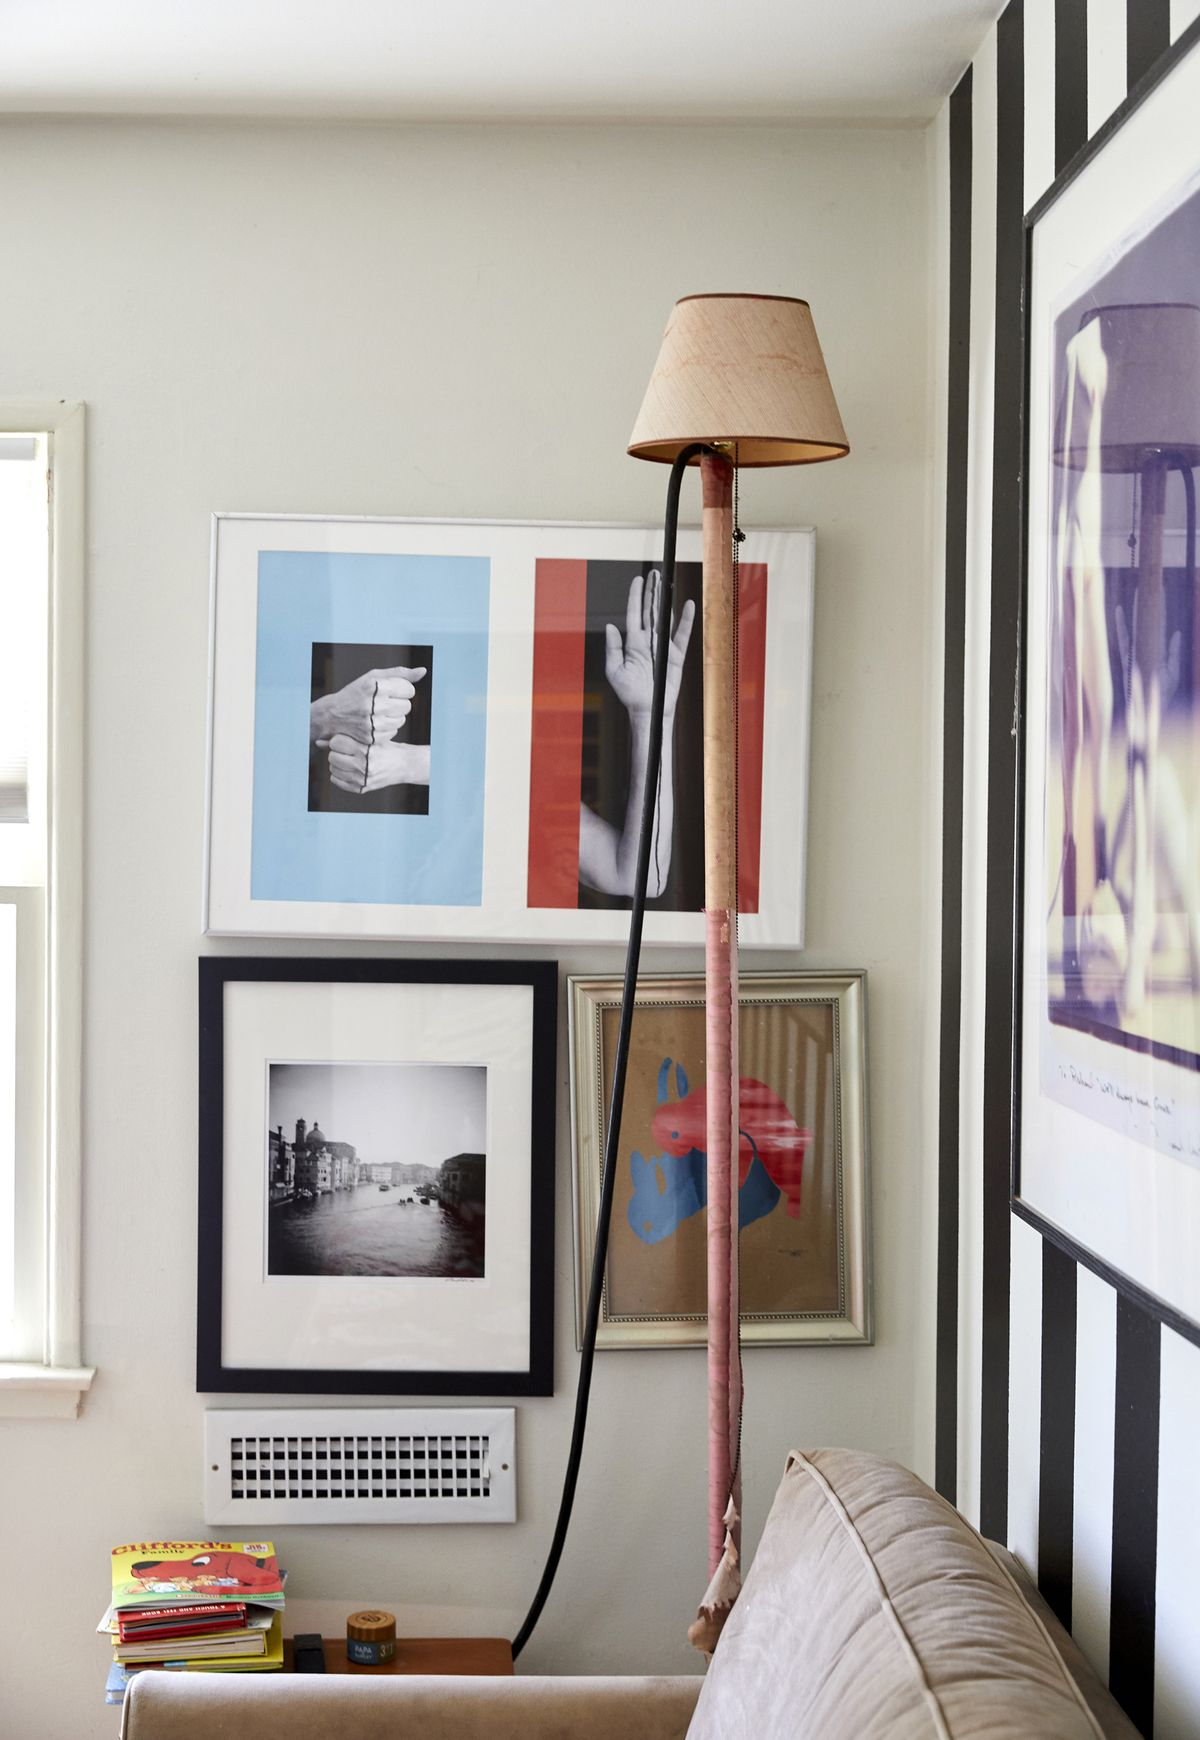 The corner of a room with a painted white wall that has many framed works of art hanging on it. There is a tall floor lamp next to a couch.